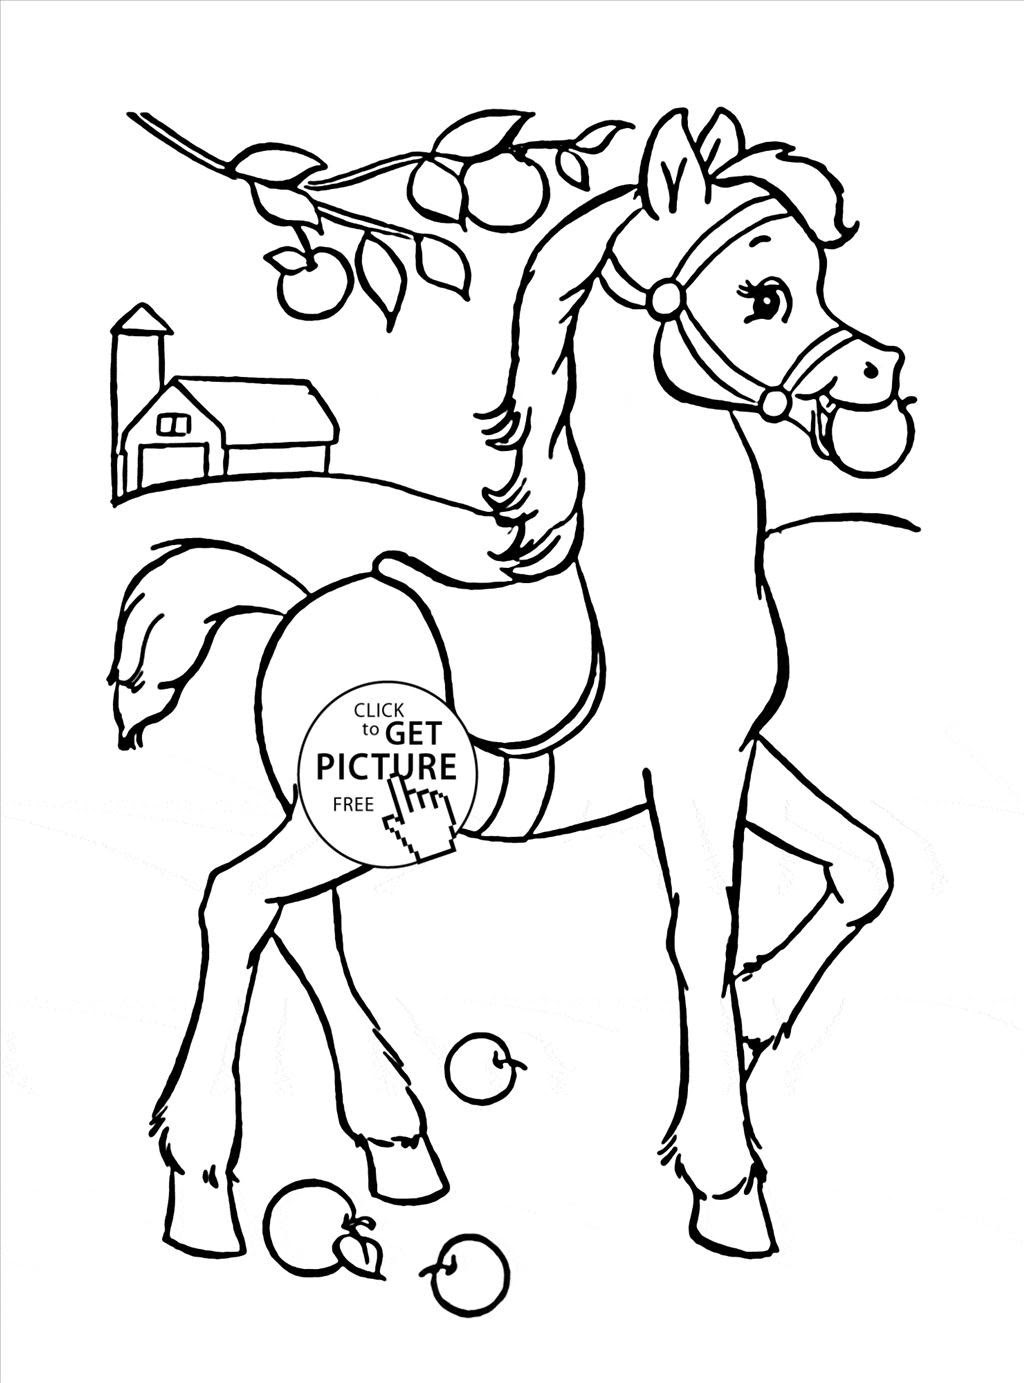 Appaloosa Horse Coloring Pages at GetColorings.com | Free ...